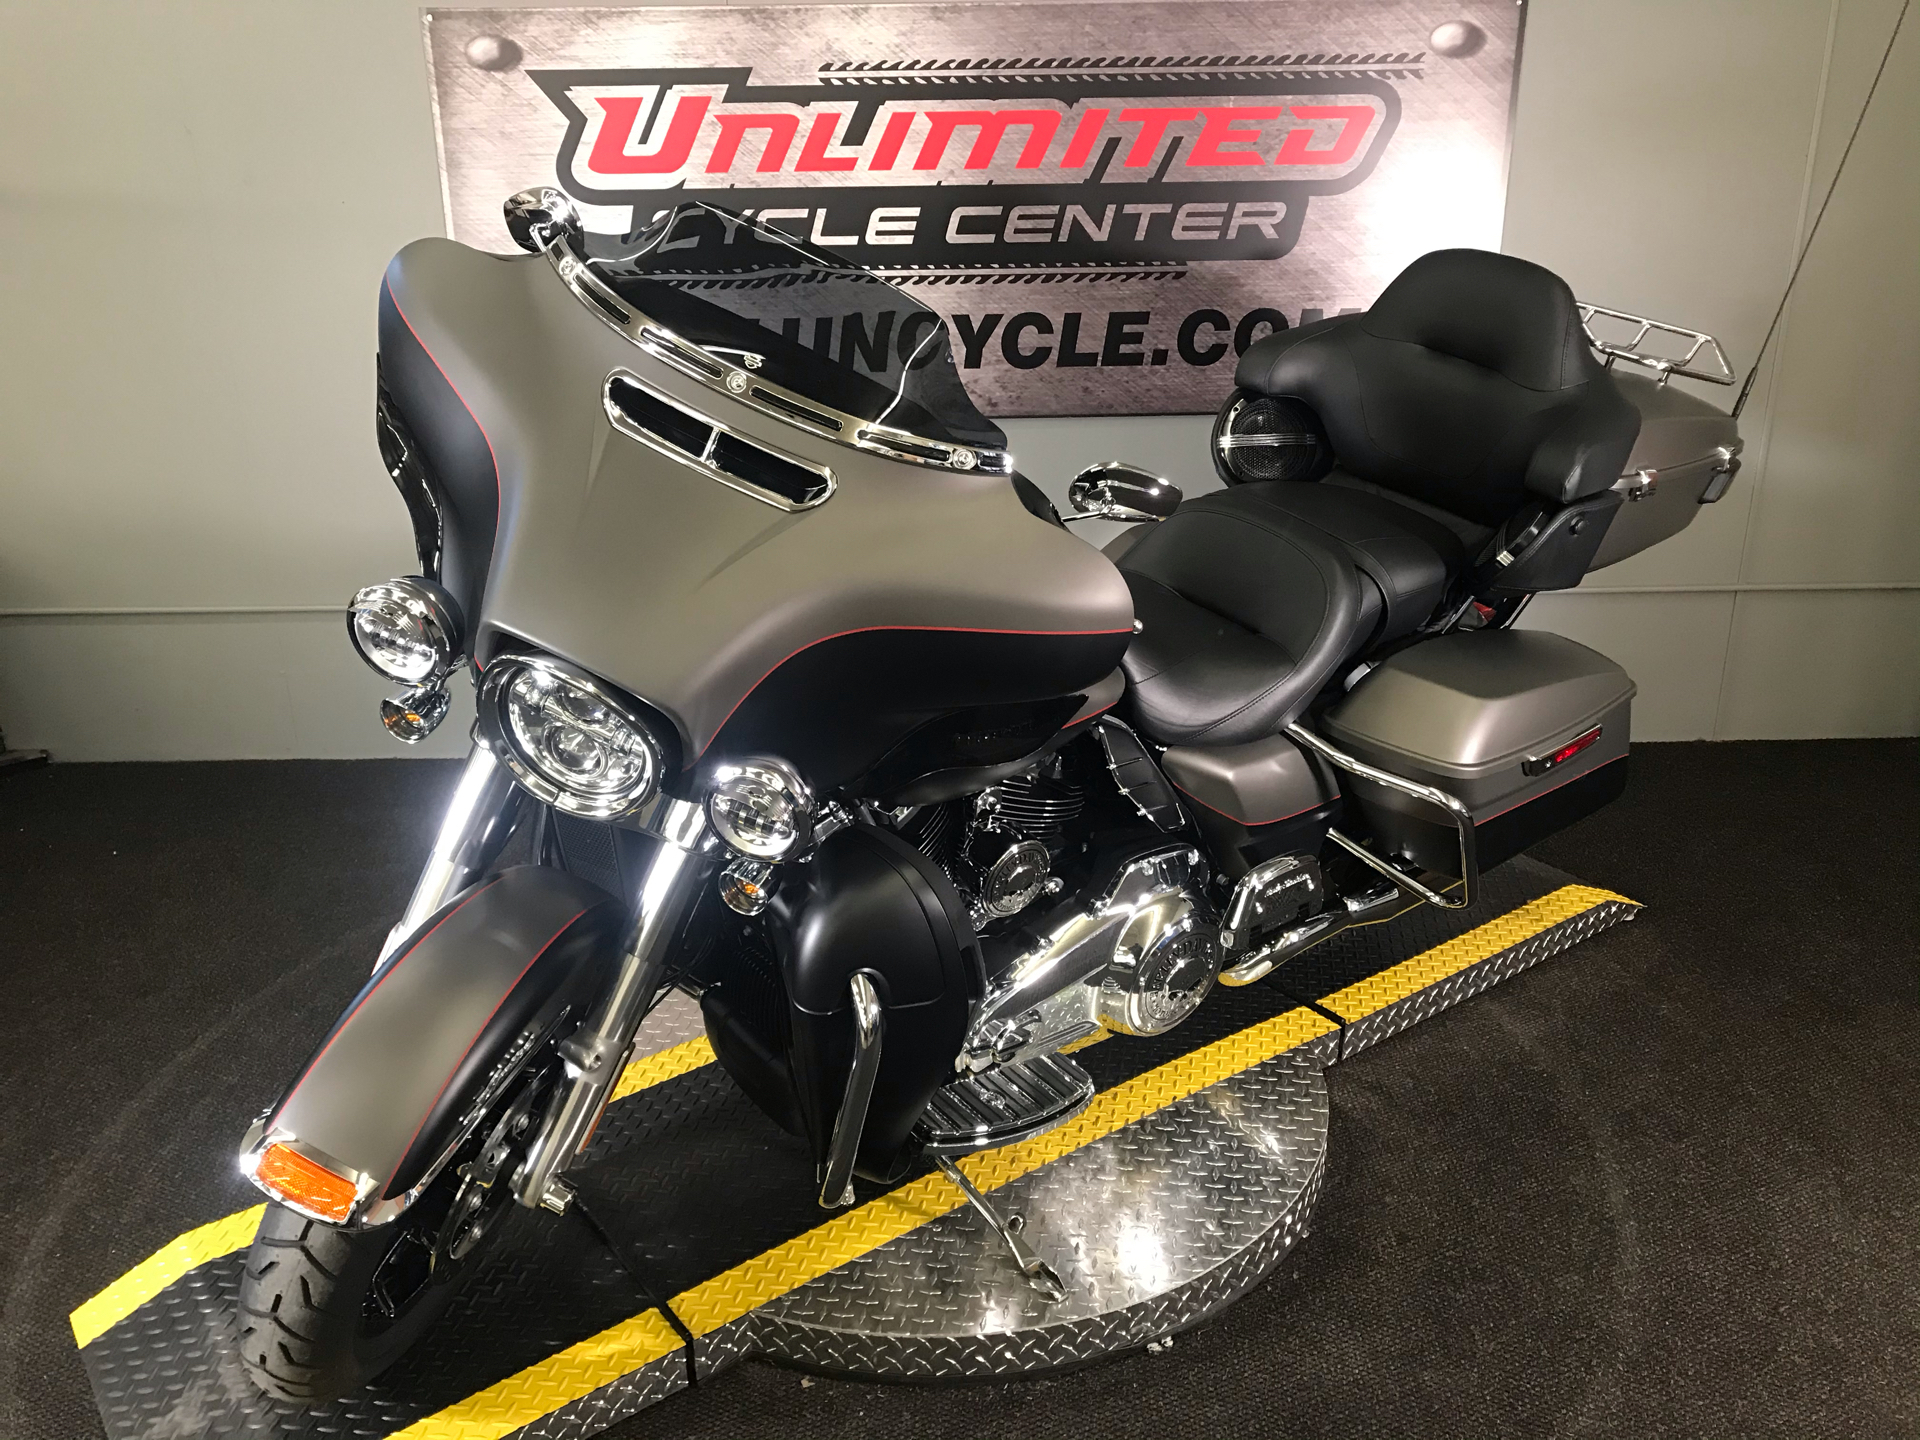 2019 Harley-Davidson Ultra Limited in Tyrone, Pennsylvania - Photo 5